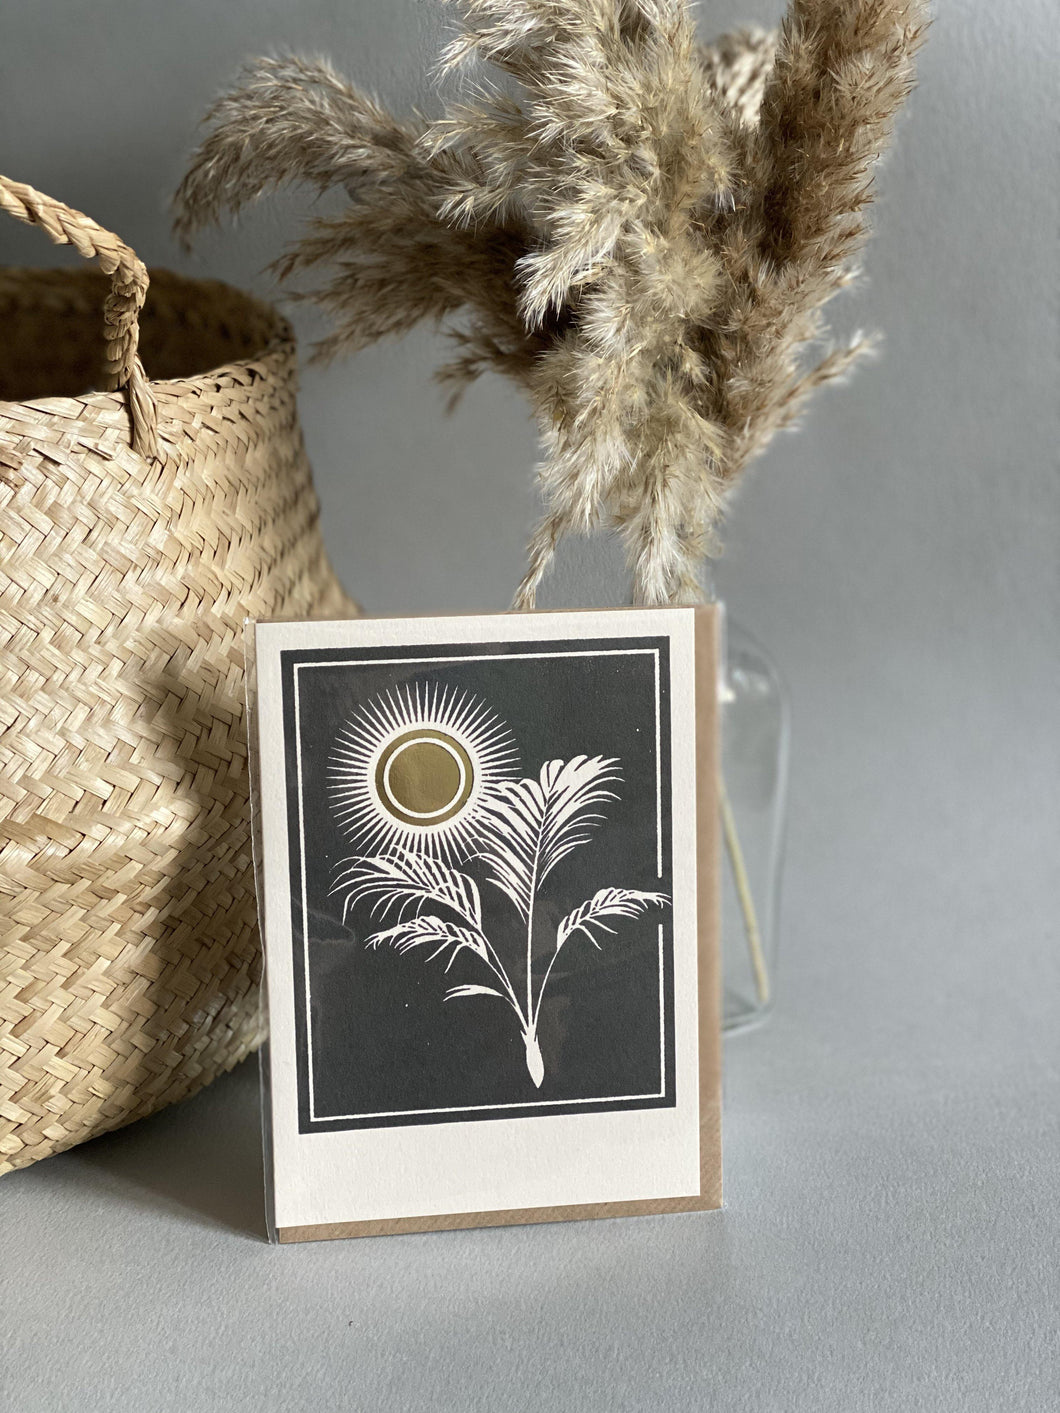 Letterpress Printed Greetings Cards